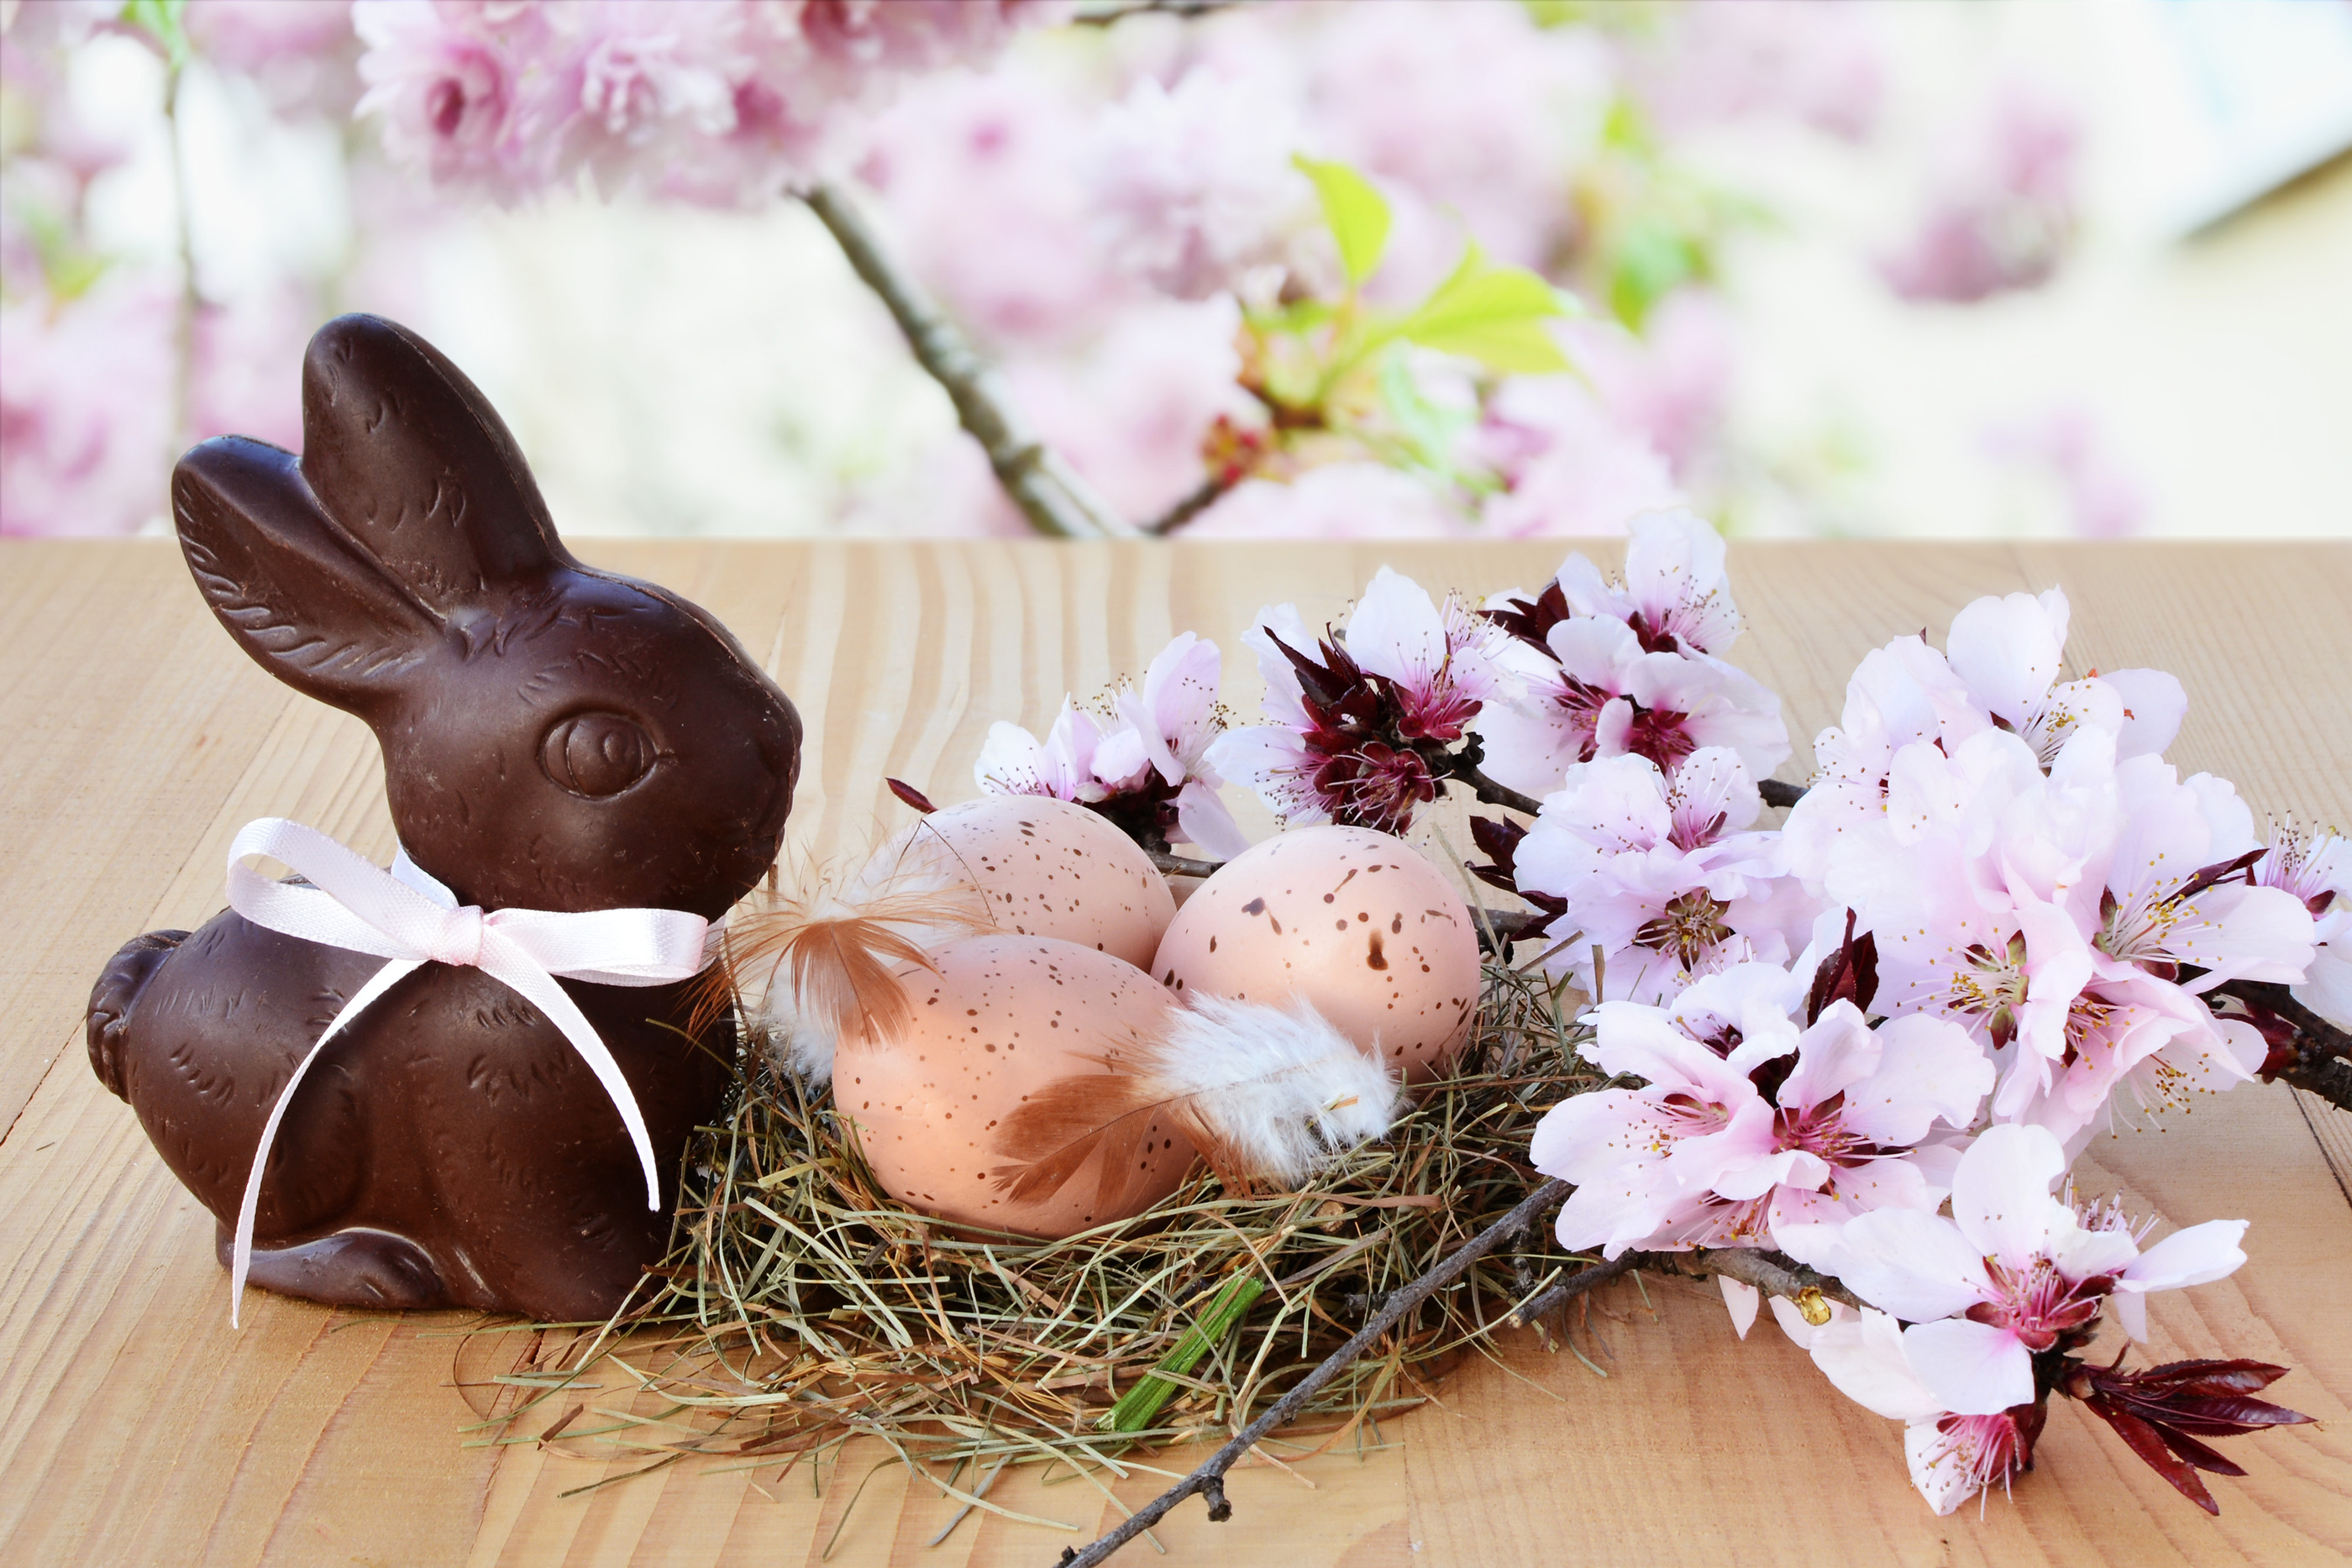 Who Invented the Chocolate Easter Bunny?